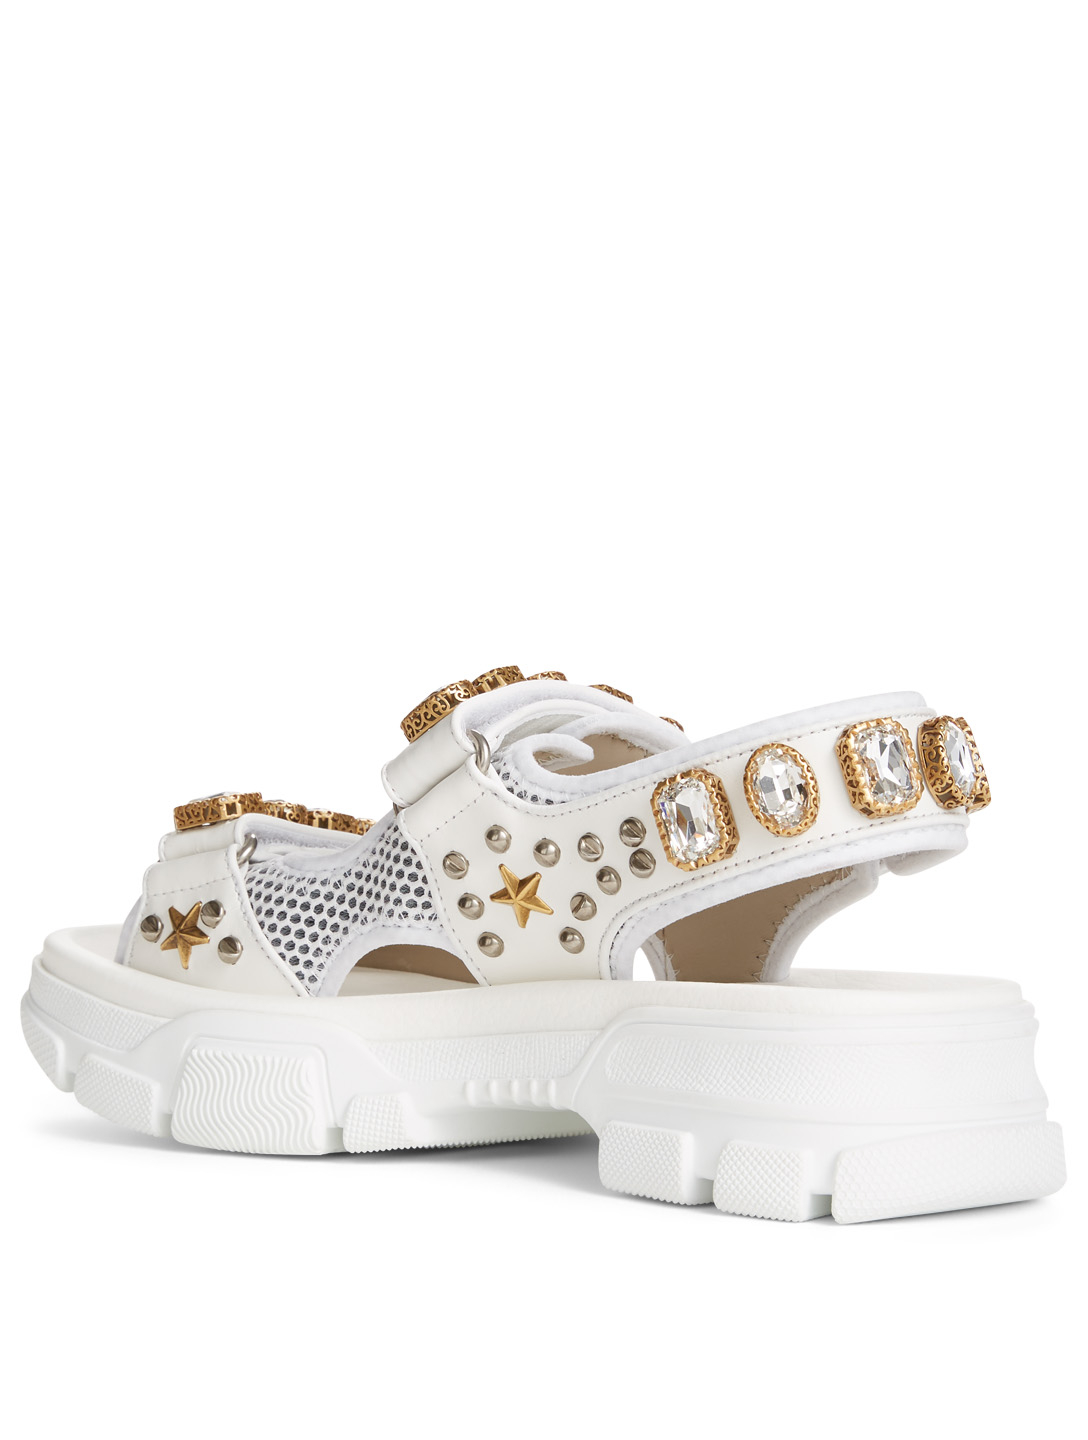 bcd19932431 ... GUCCI Leather And Mesh Sandals With Crystals Women s White ...